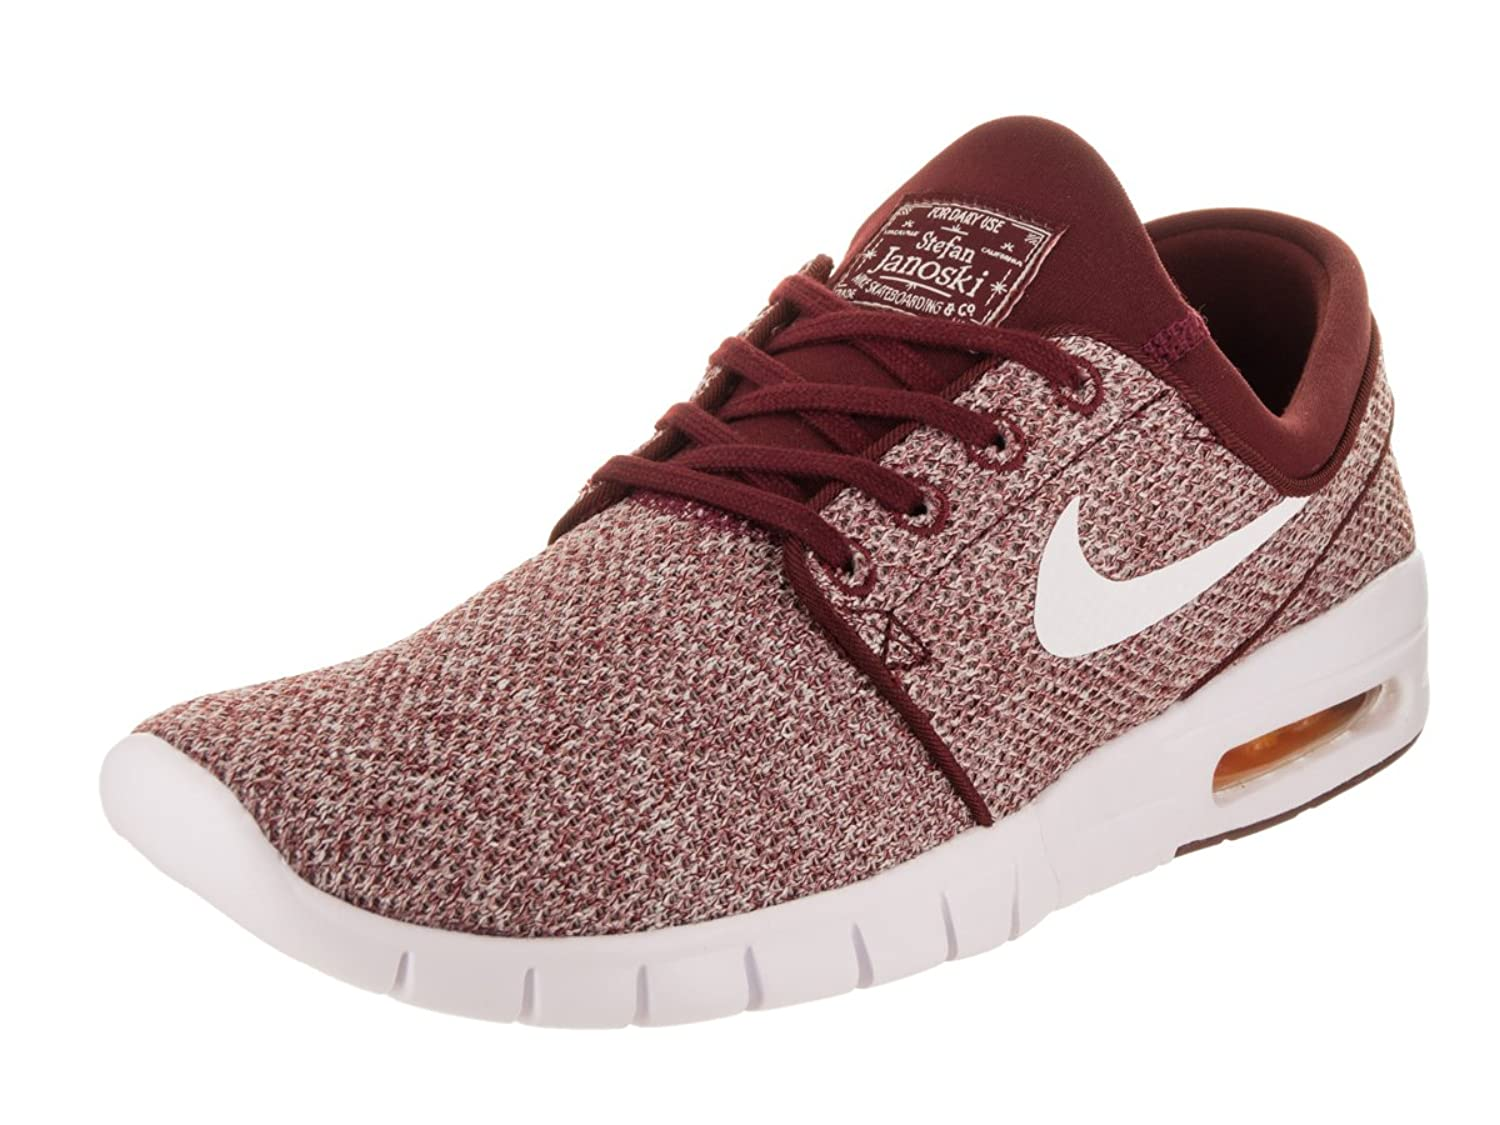 5240a617e189 Nike Men s Stefan Janoski Max Dark Team Red White Sneakers - 12 D(M